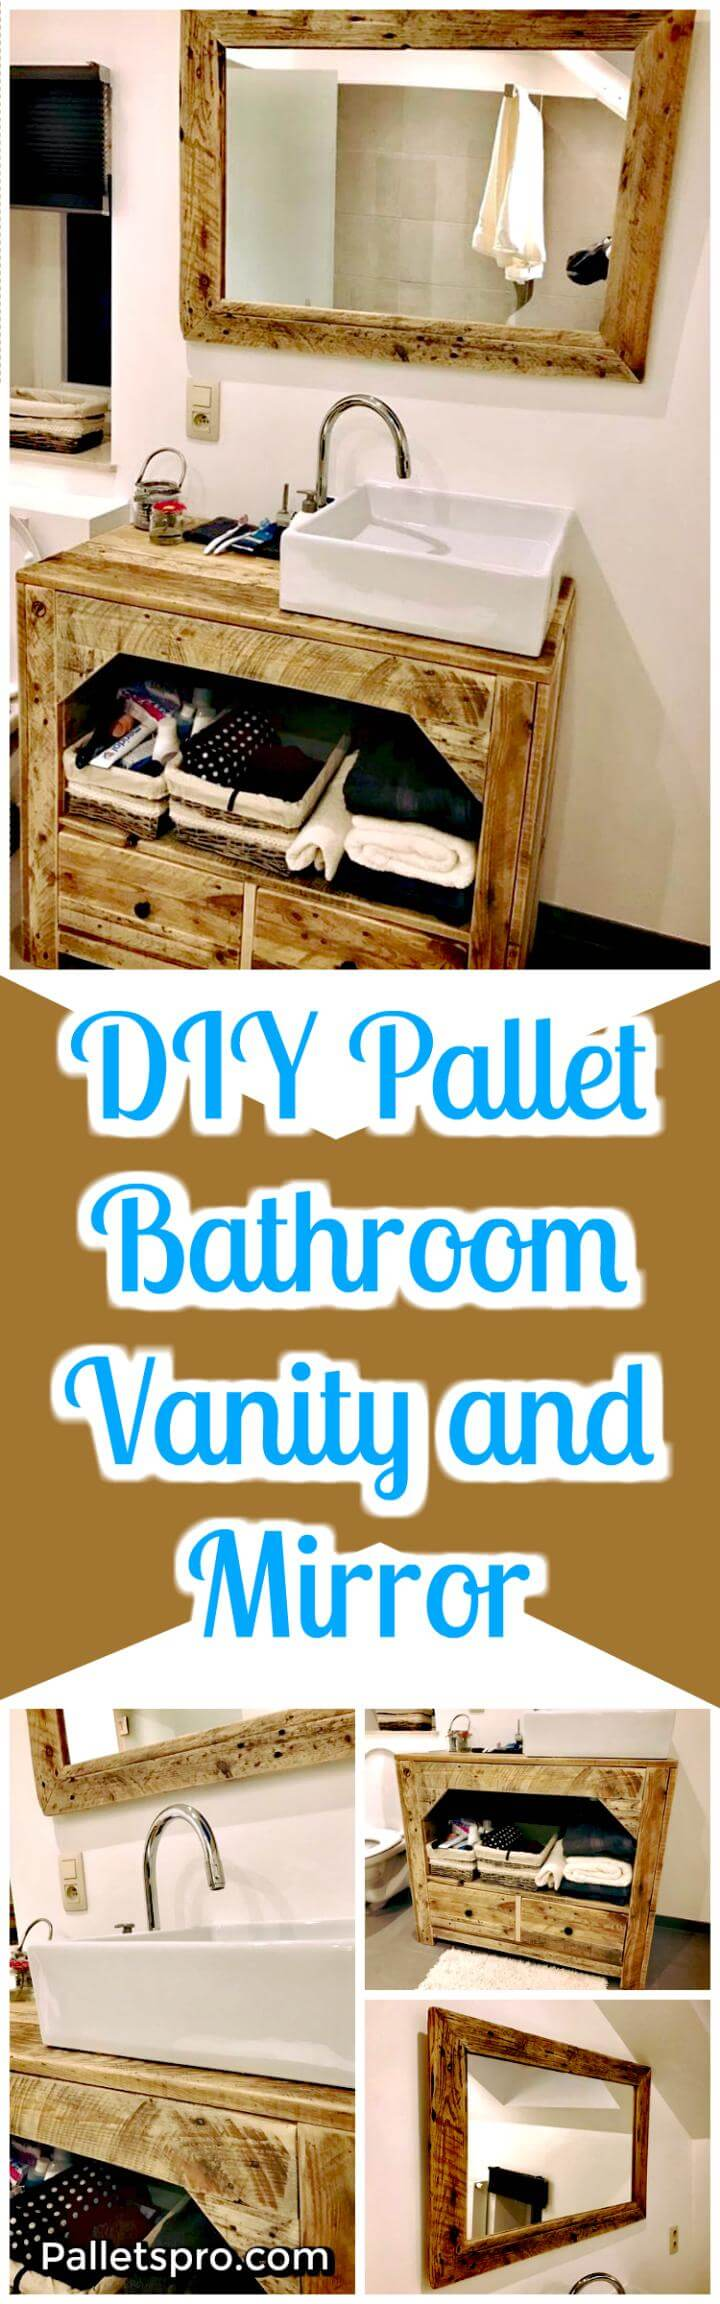 Pallet Bathroom Vanity and Mirror